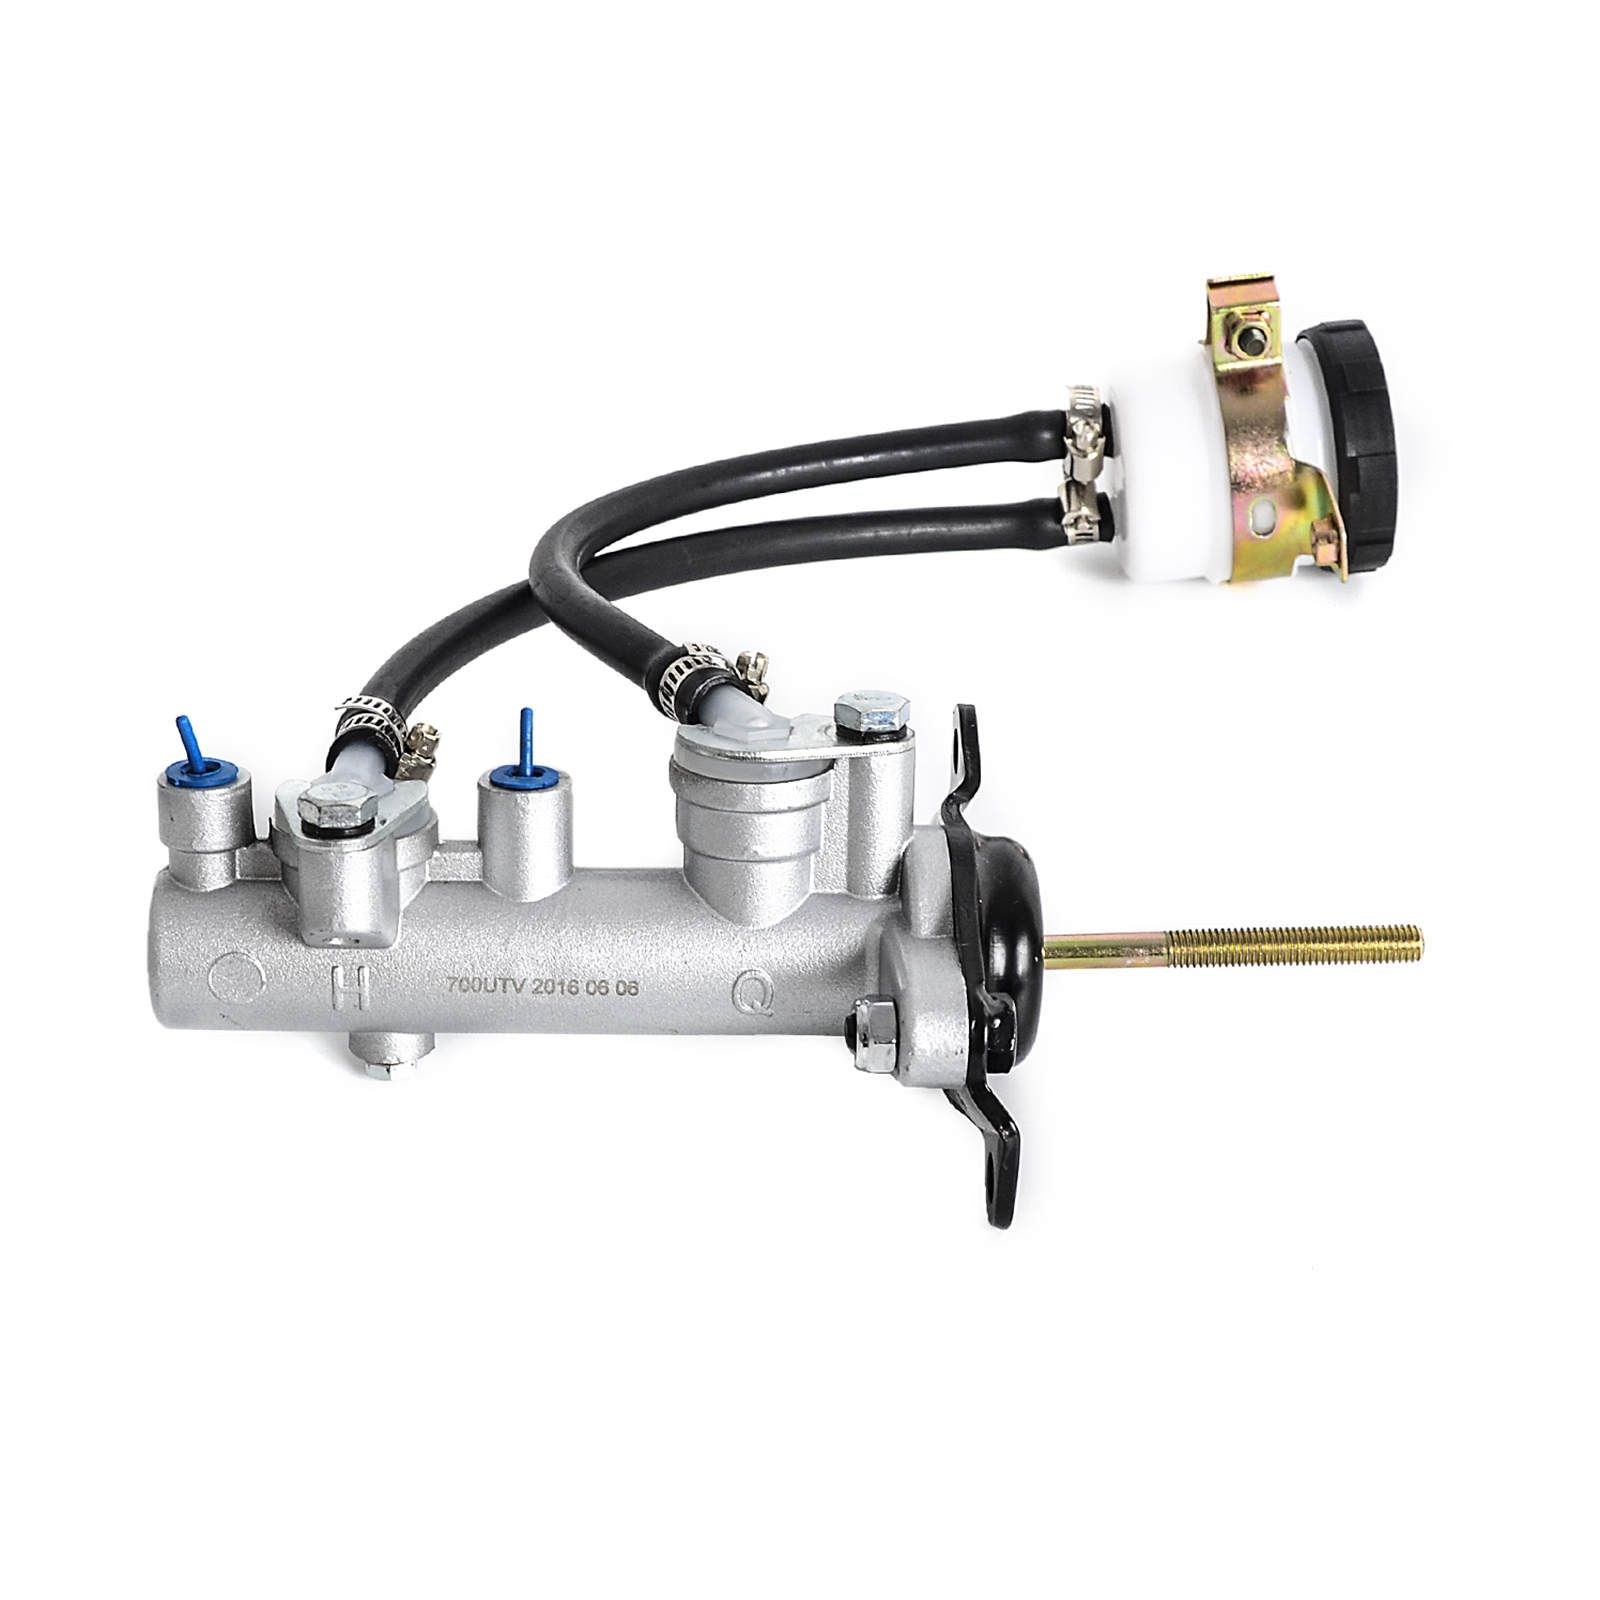 Brake Master Cylinder Pump For HiSUN 400 500 700 800 UTV Massimo MSU 400 800 Bennche